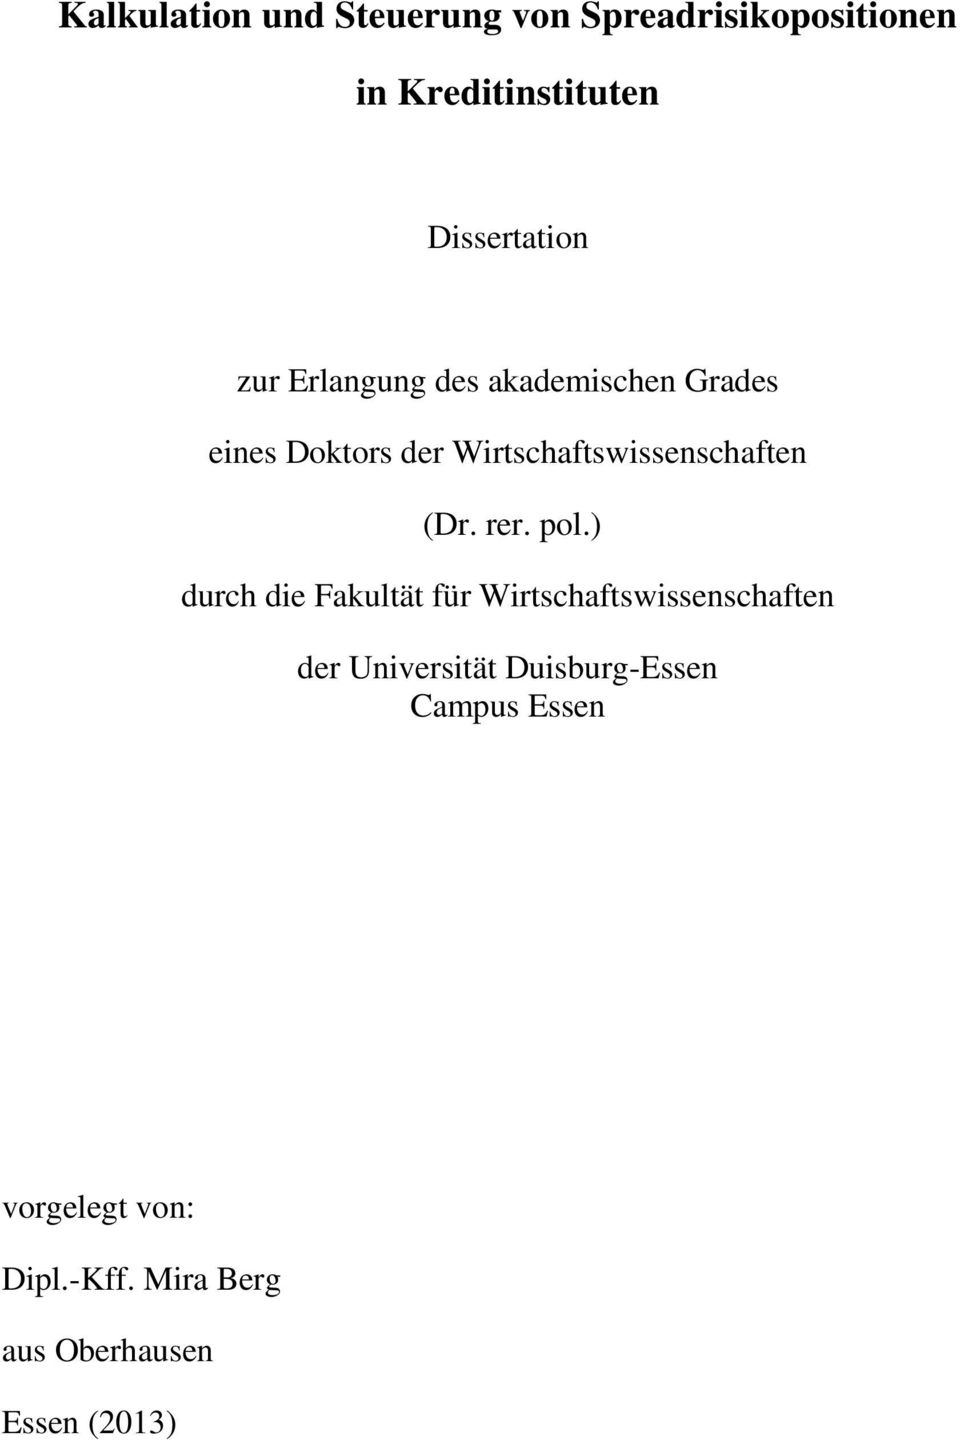 rainer vallentin dissertation